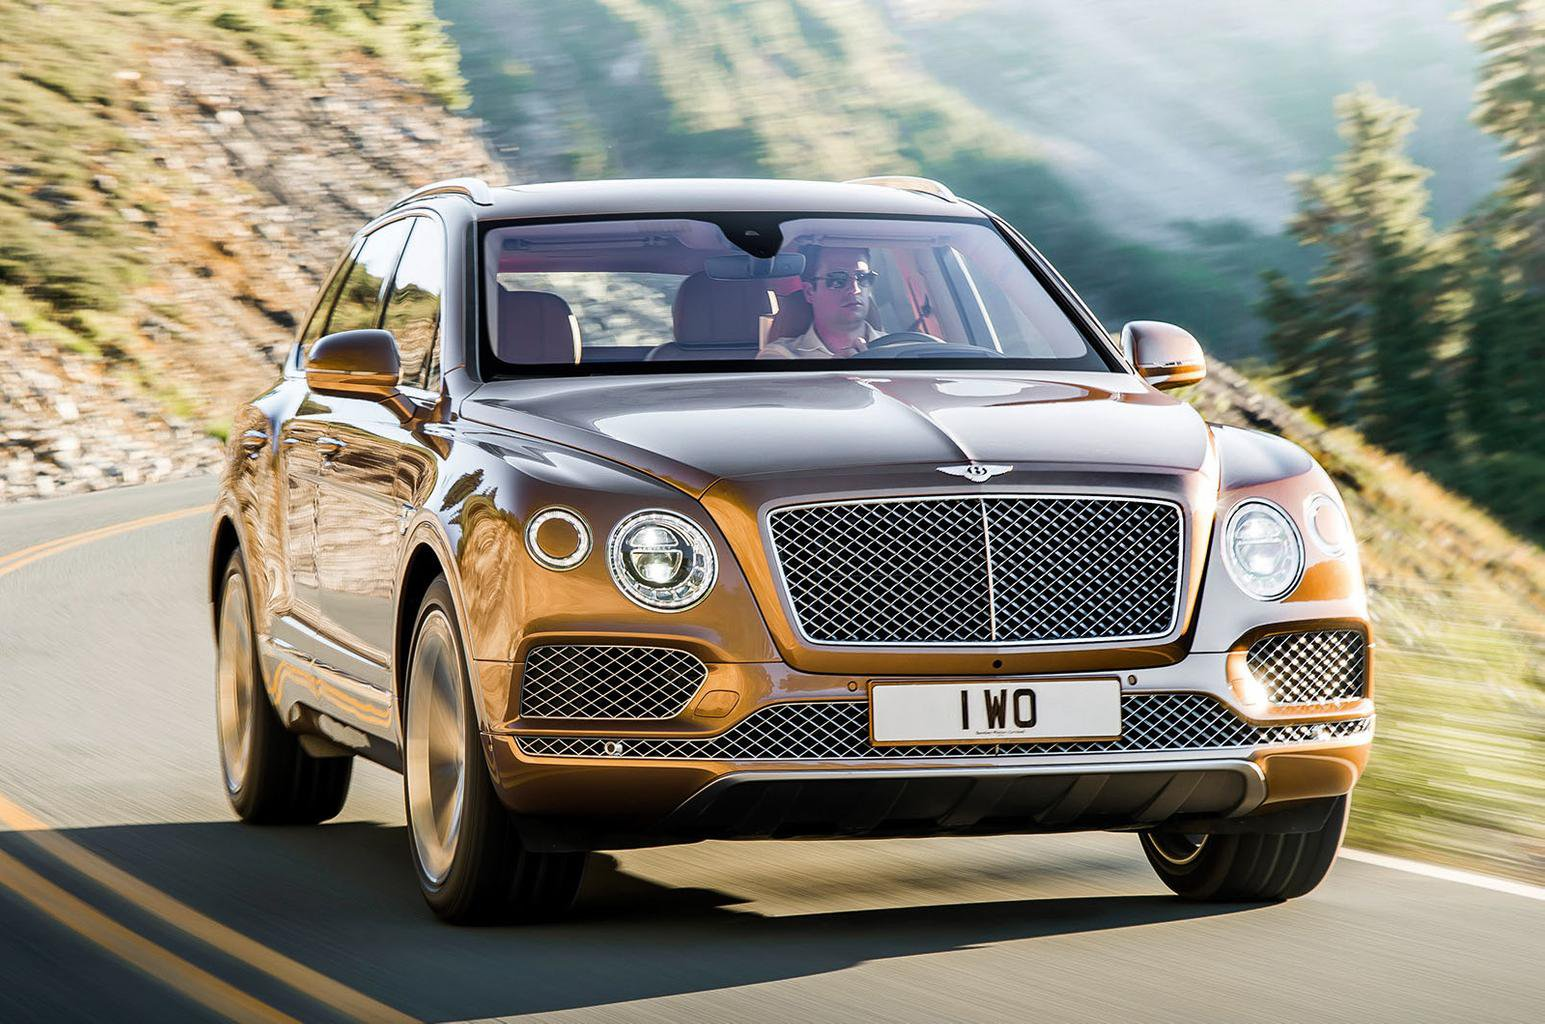 2016 Bentley Bentayga revealed - full pictures, pricing and engine details